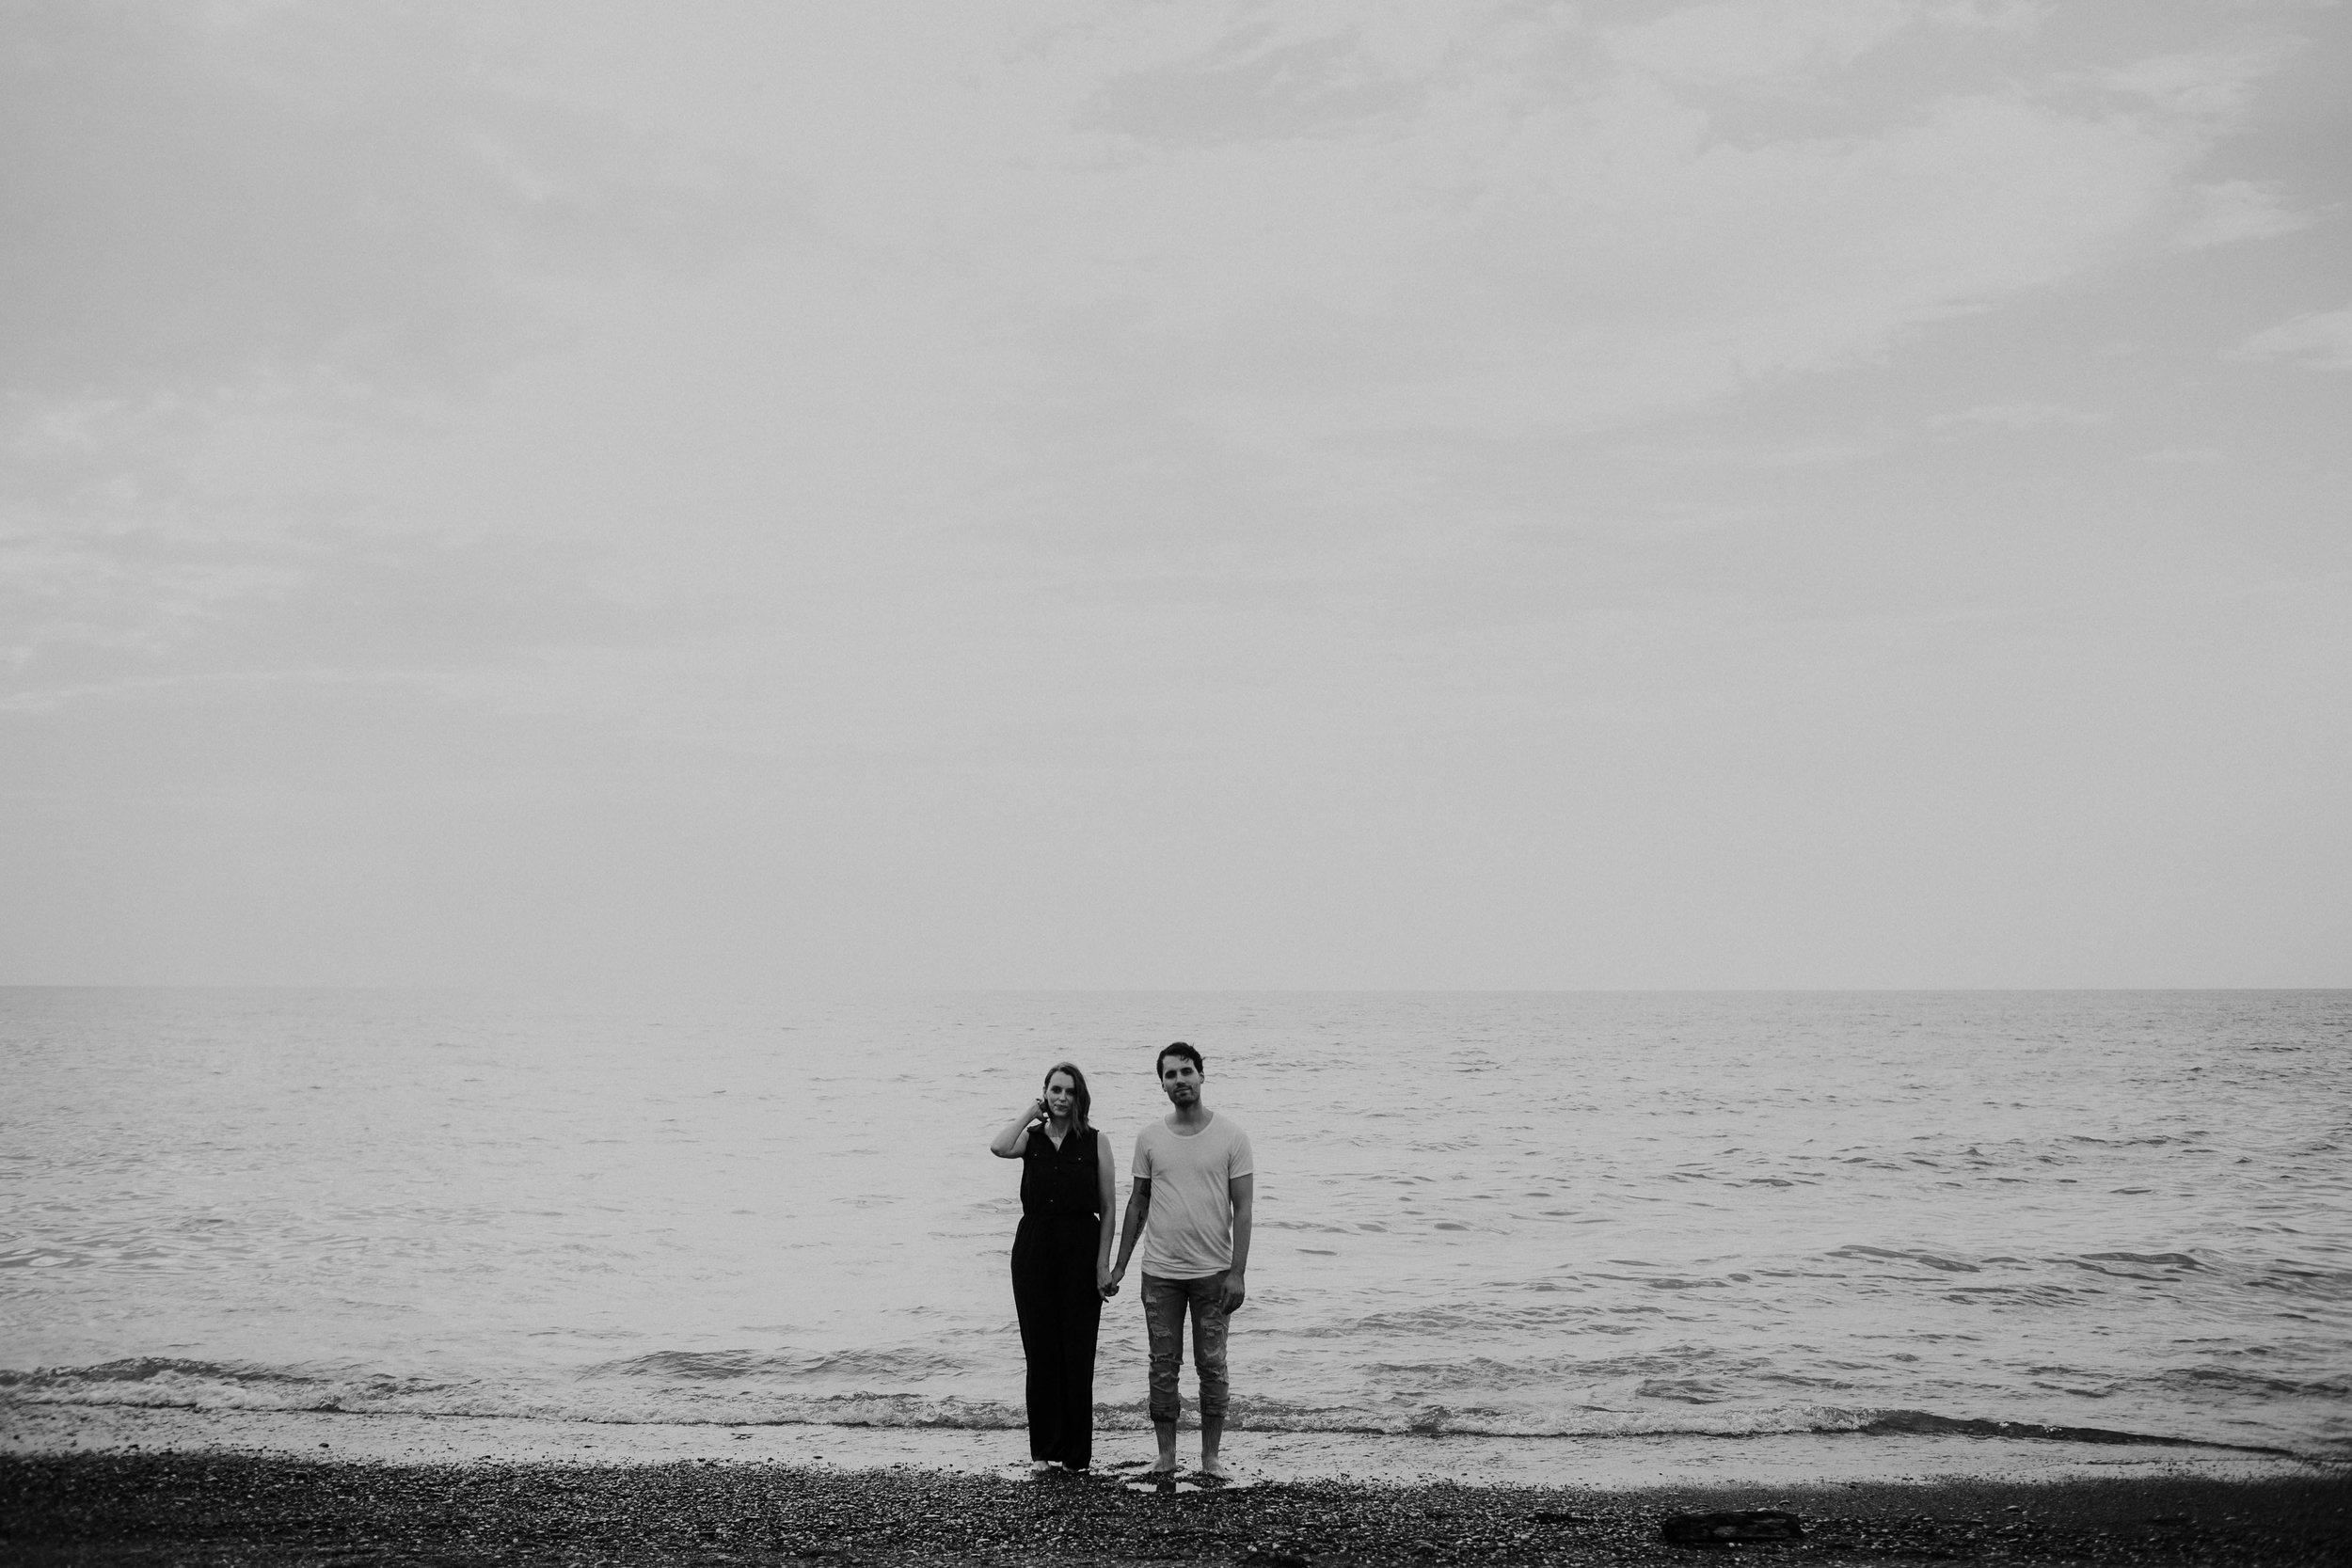 Headlands Beach State Park Mentor Ohio Photo Session wedding anniversary photo session grace e jones photography111.jpg